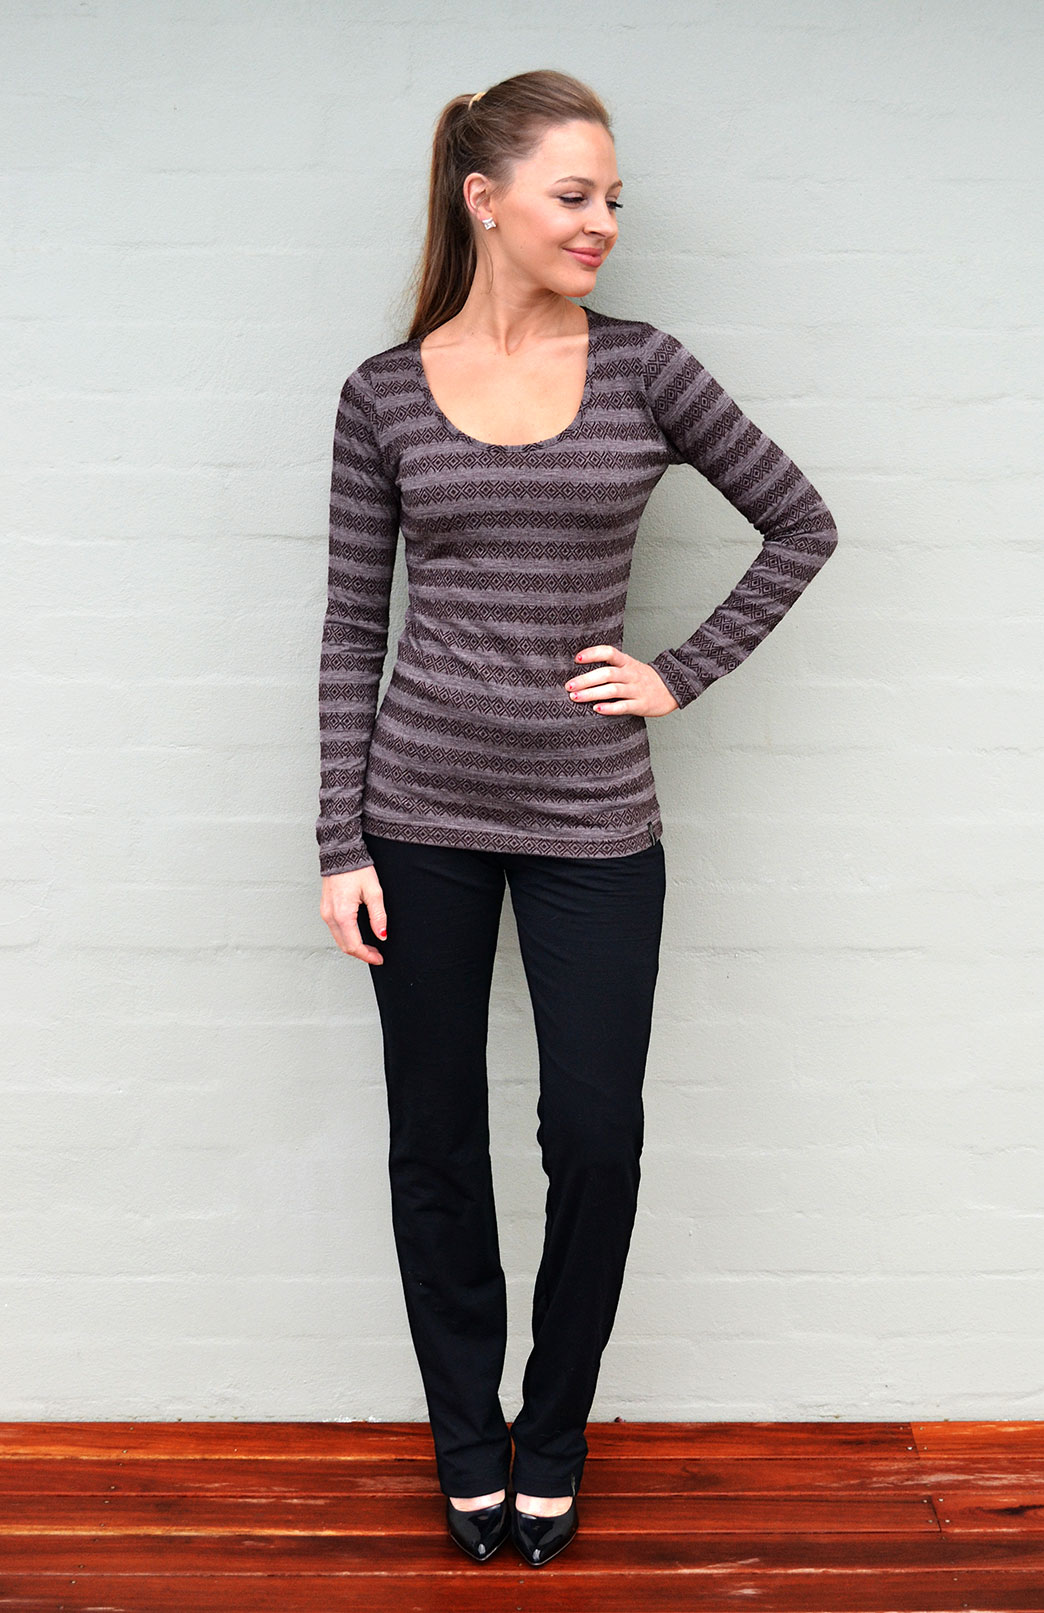 Scoop Neck Top - Patterned - Women's Coffee Brown Aztec Patterned Merino Wool Long Sleeved Thermal Top with Scoop Neckline - Smitten Merino Tasmania Australia